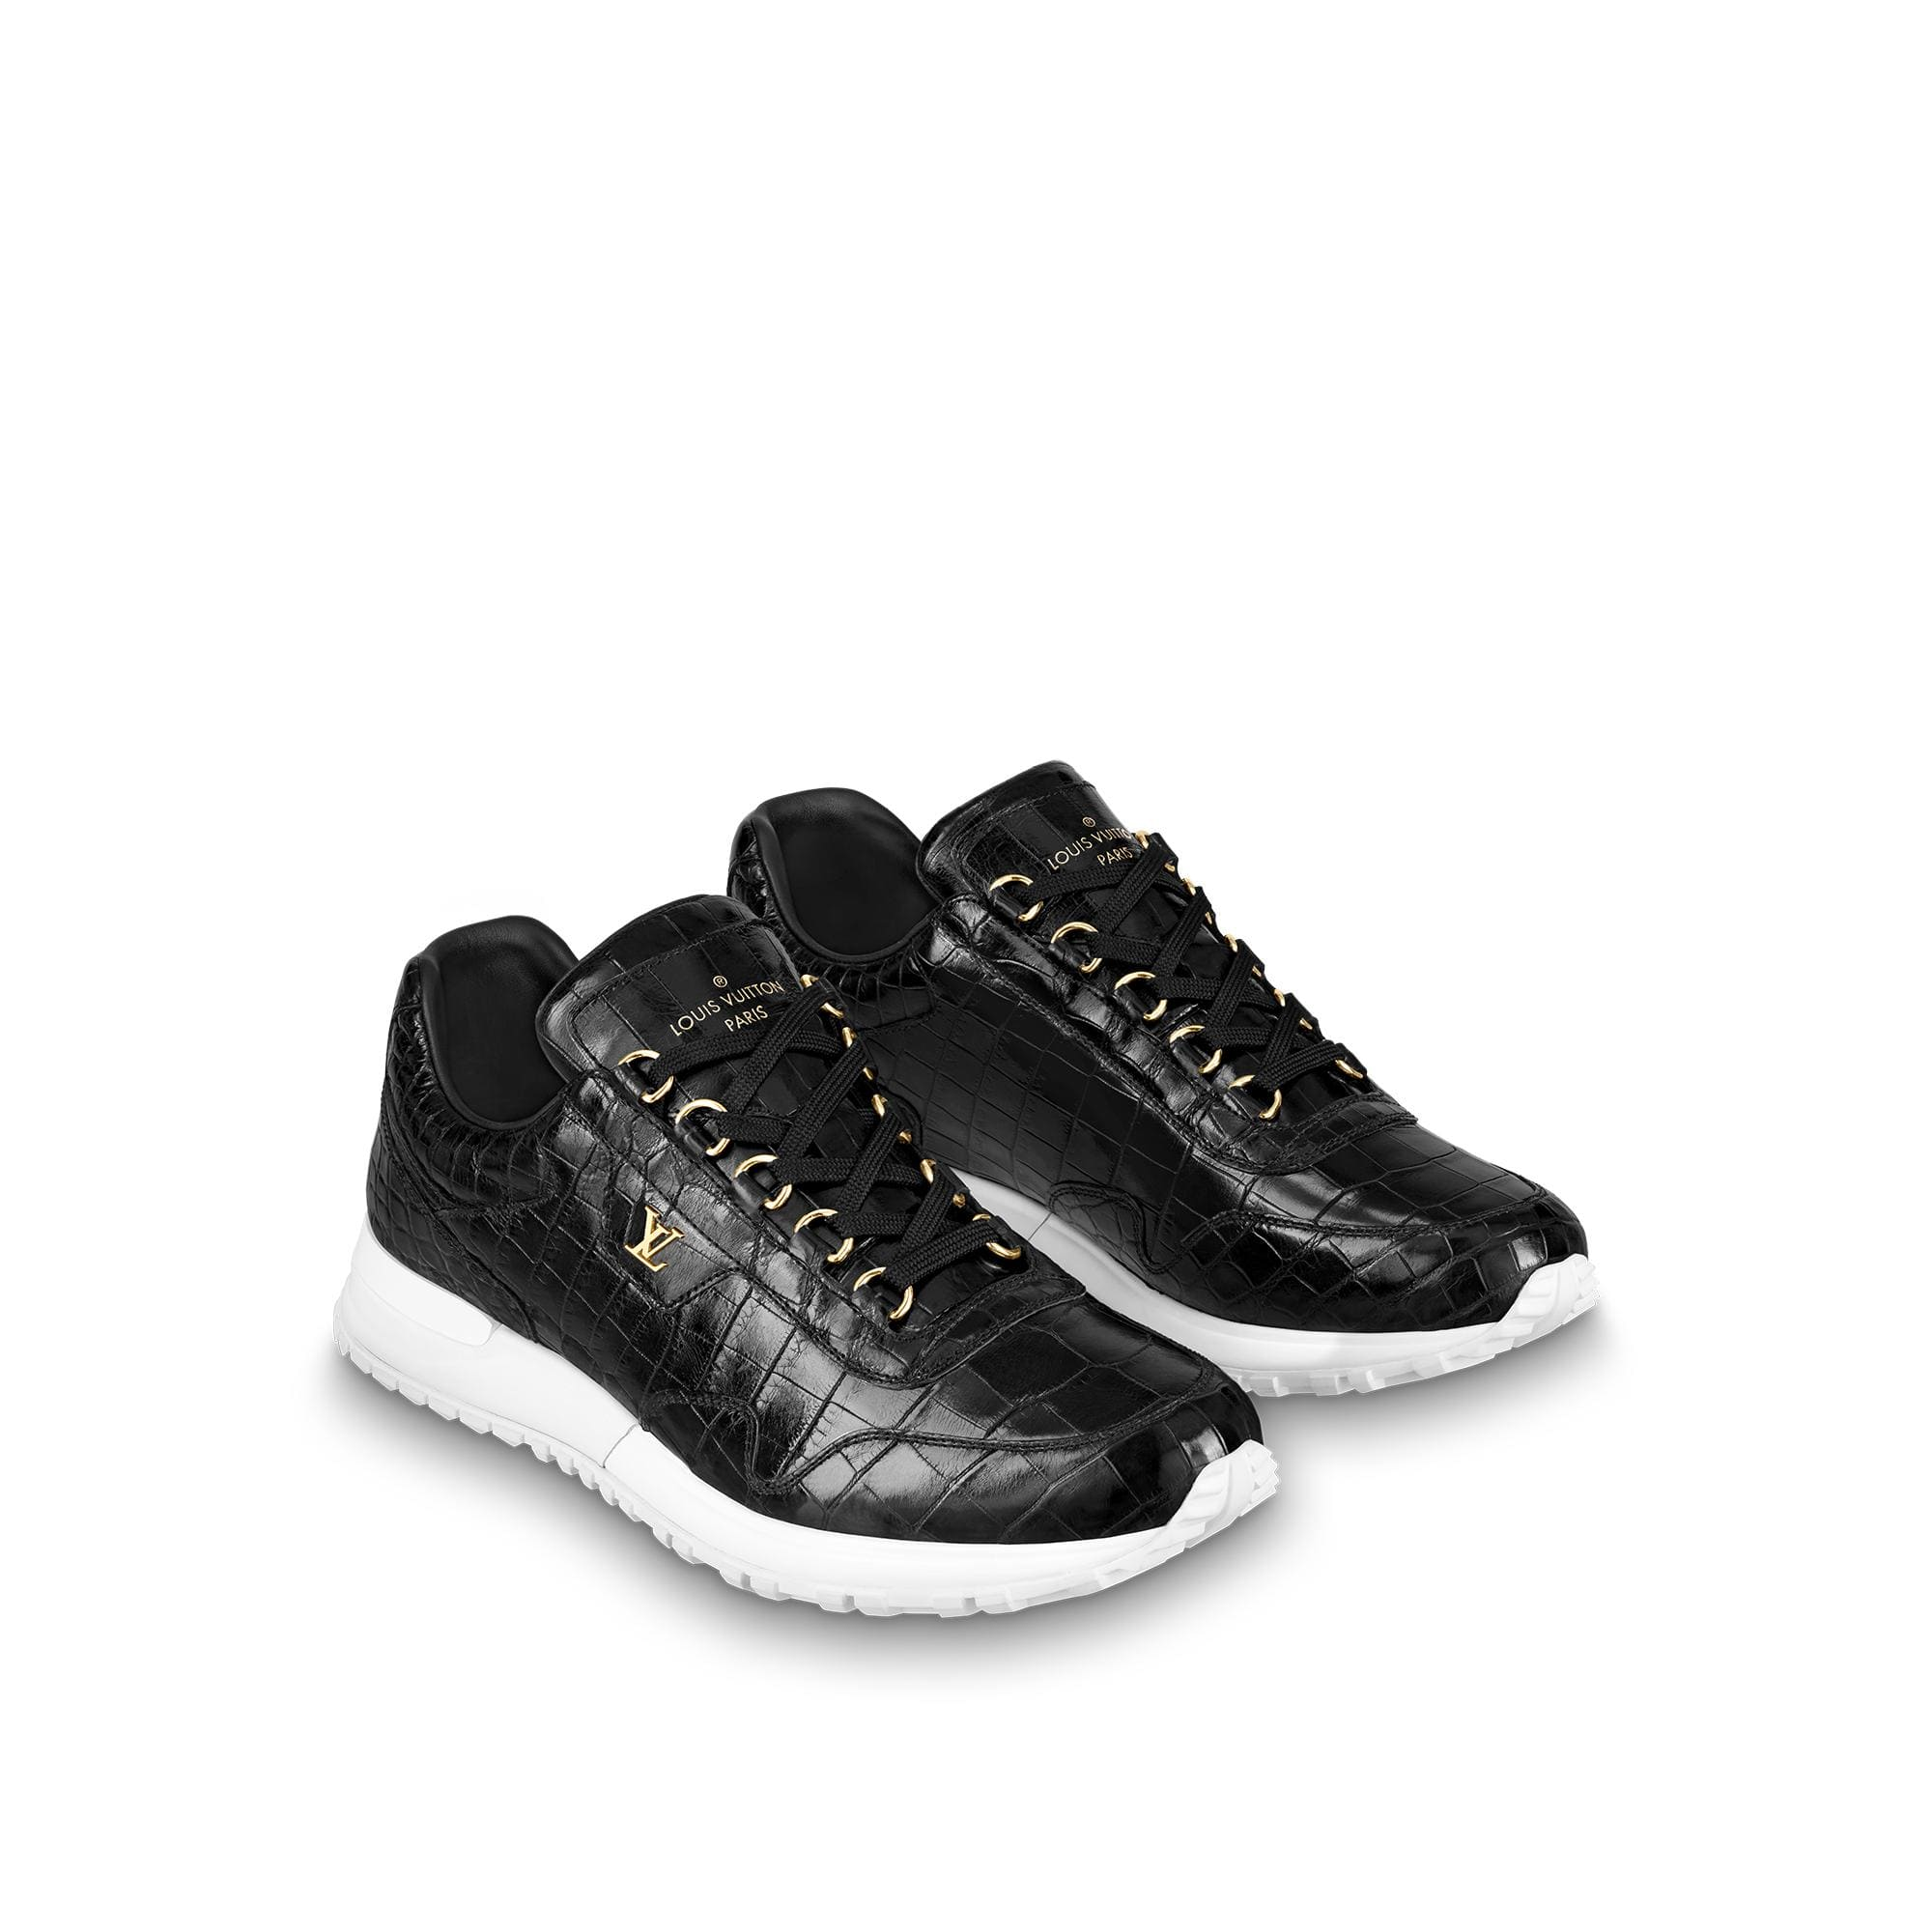 유럽직배송 루이비통 LOUIS VUITTON Run Away Trainer 1A4B73